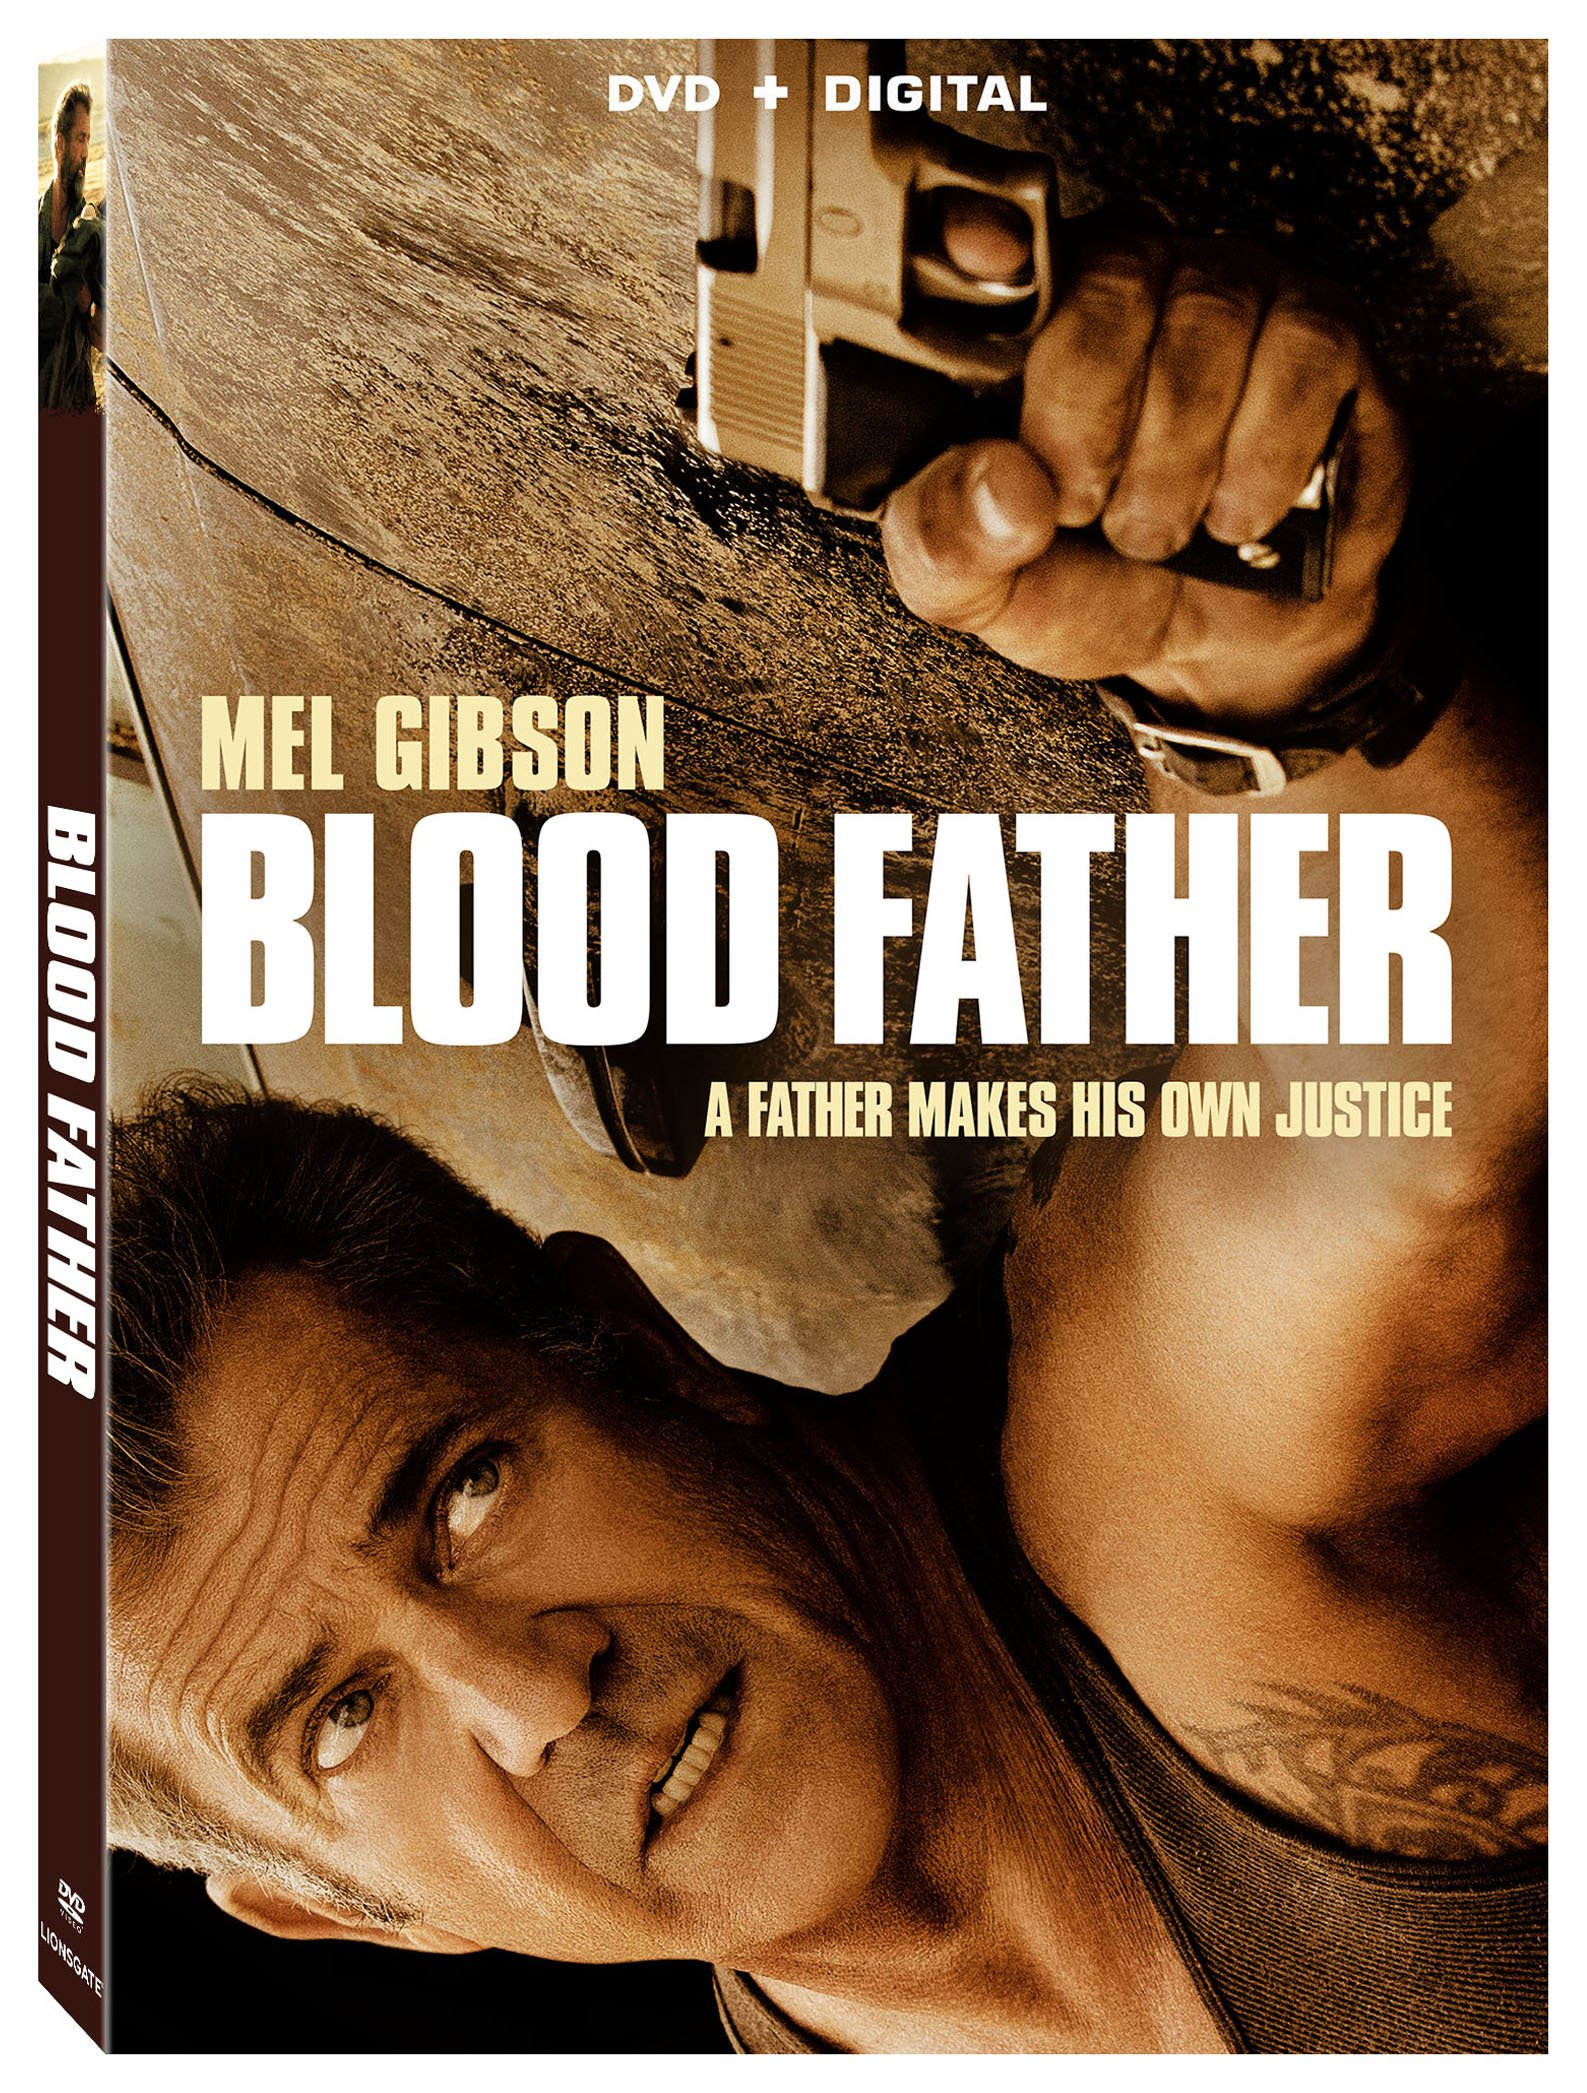 DVD : Blood Father (DVD)